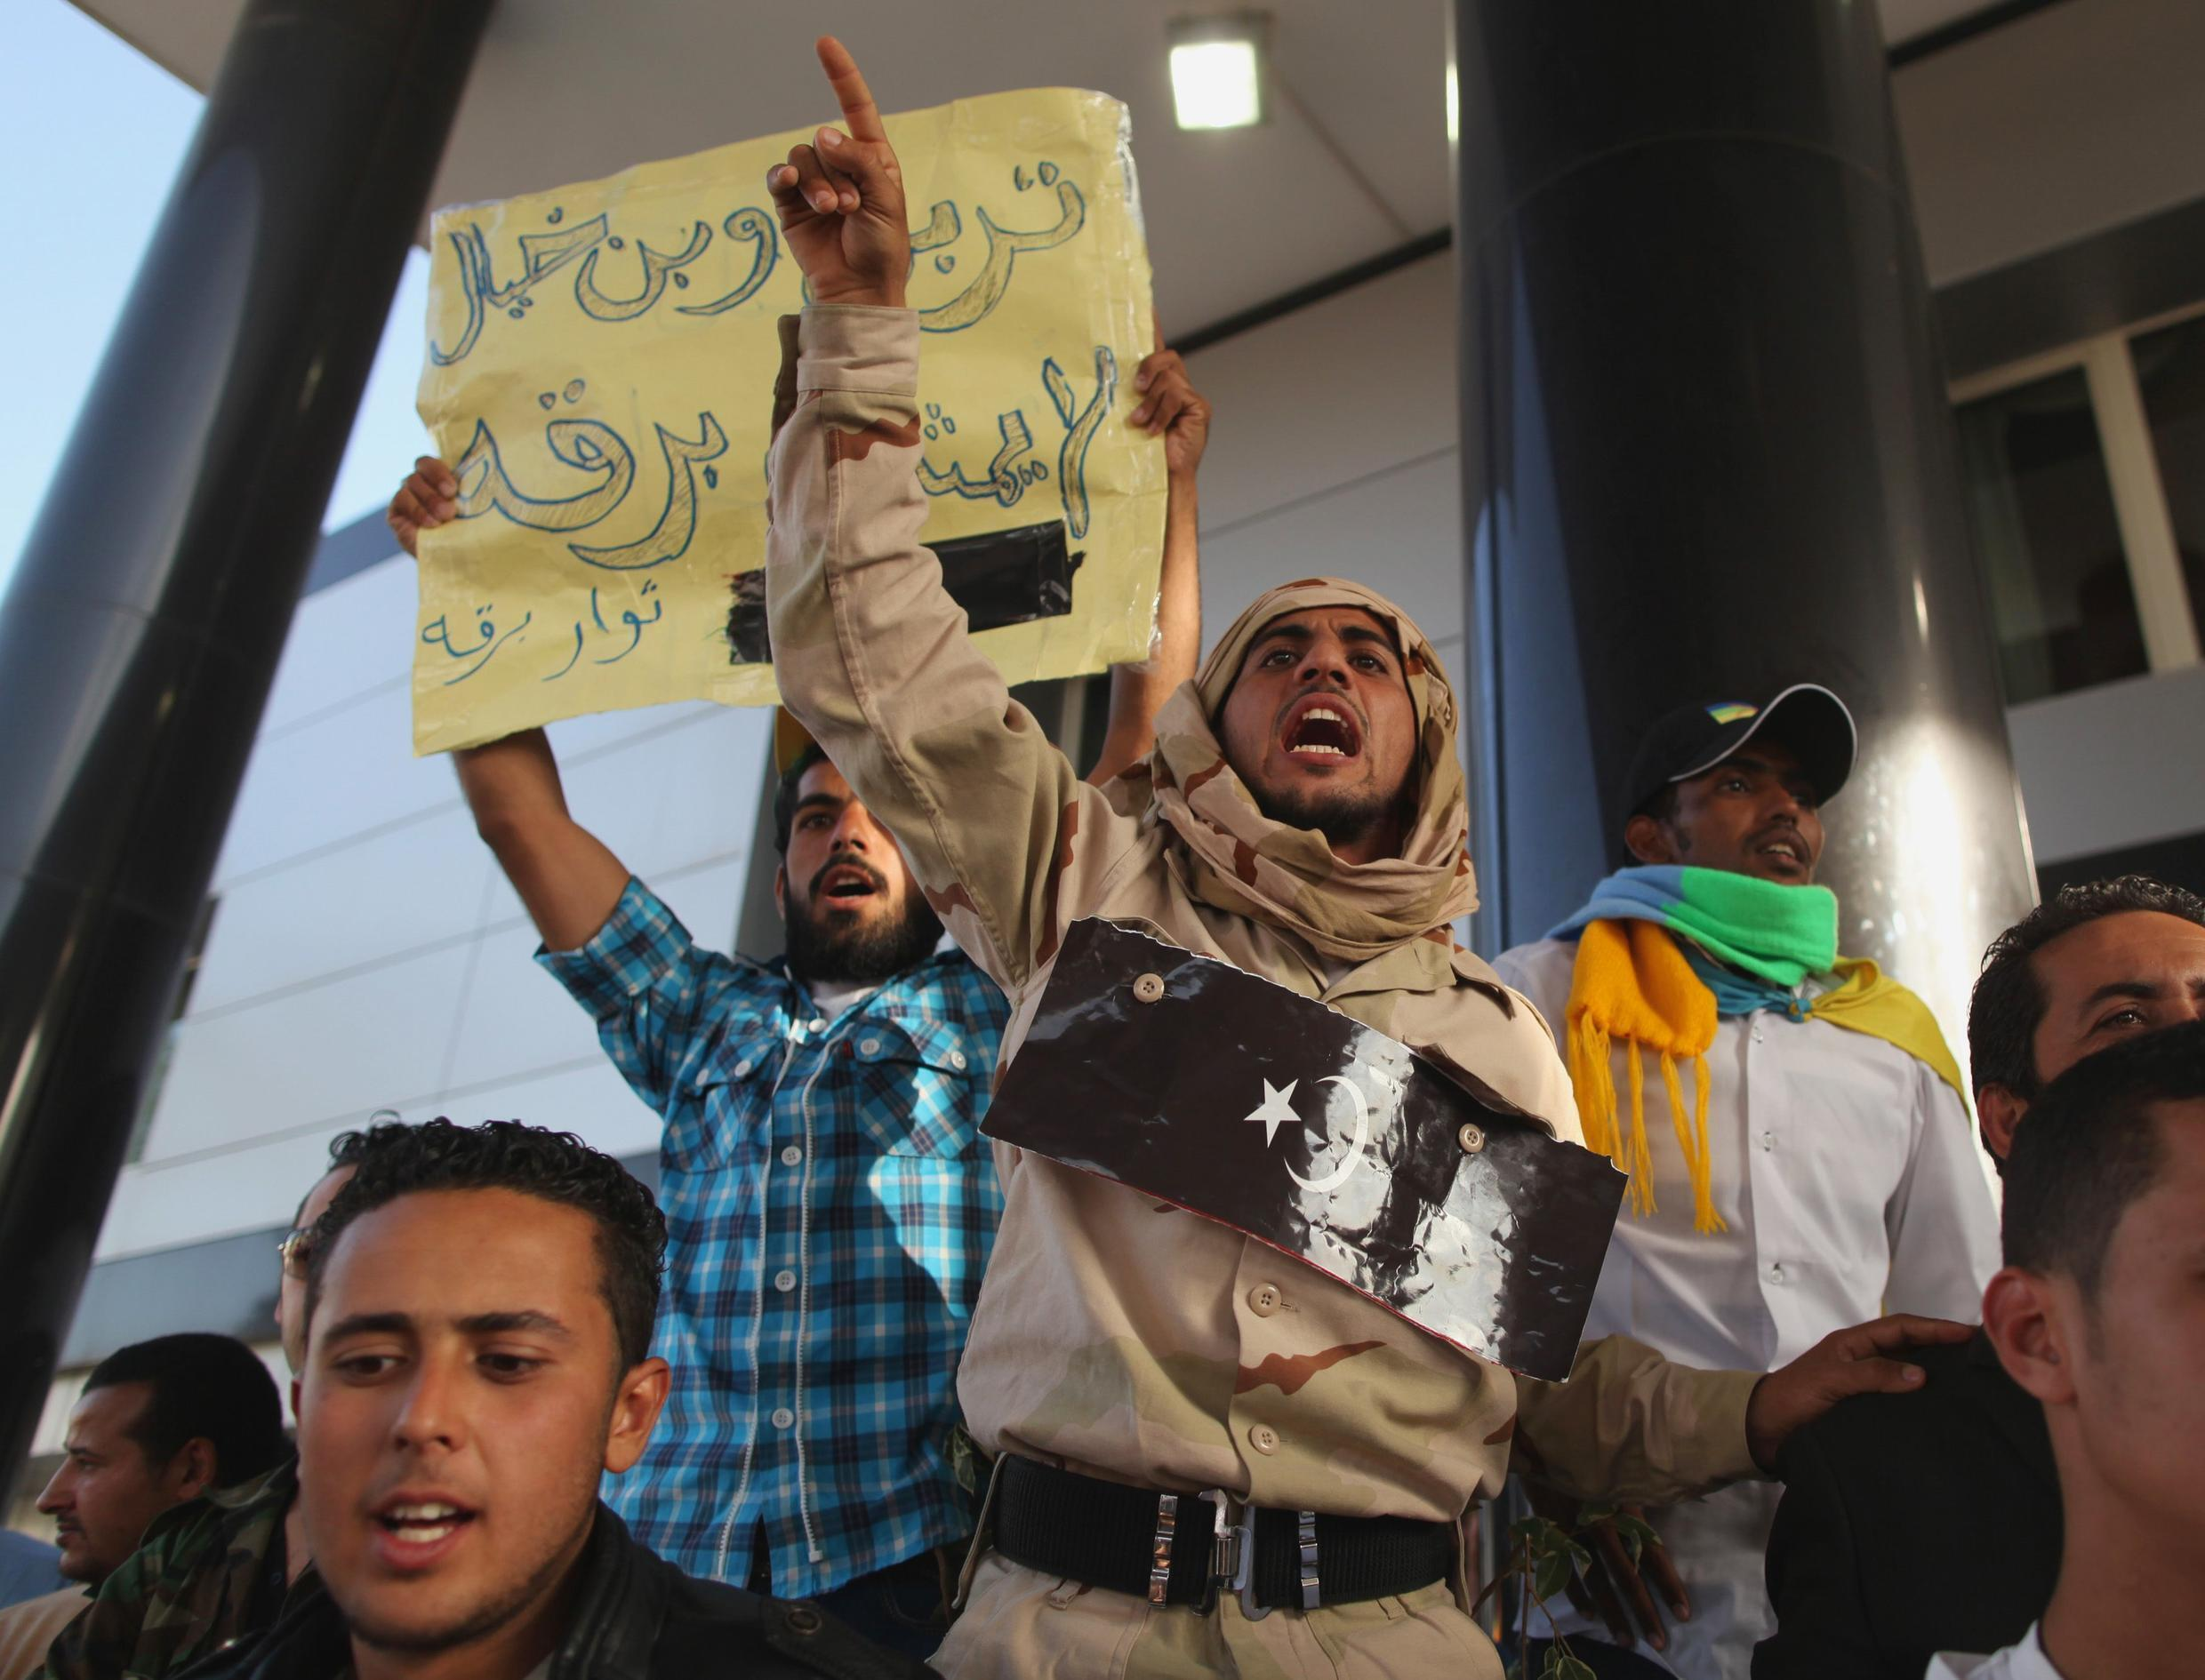 An Amazigh fighter takes part in a protest at the Prime Minister's office in Tripoli